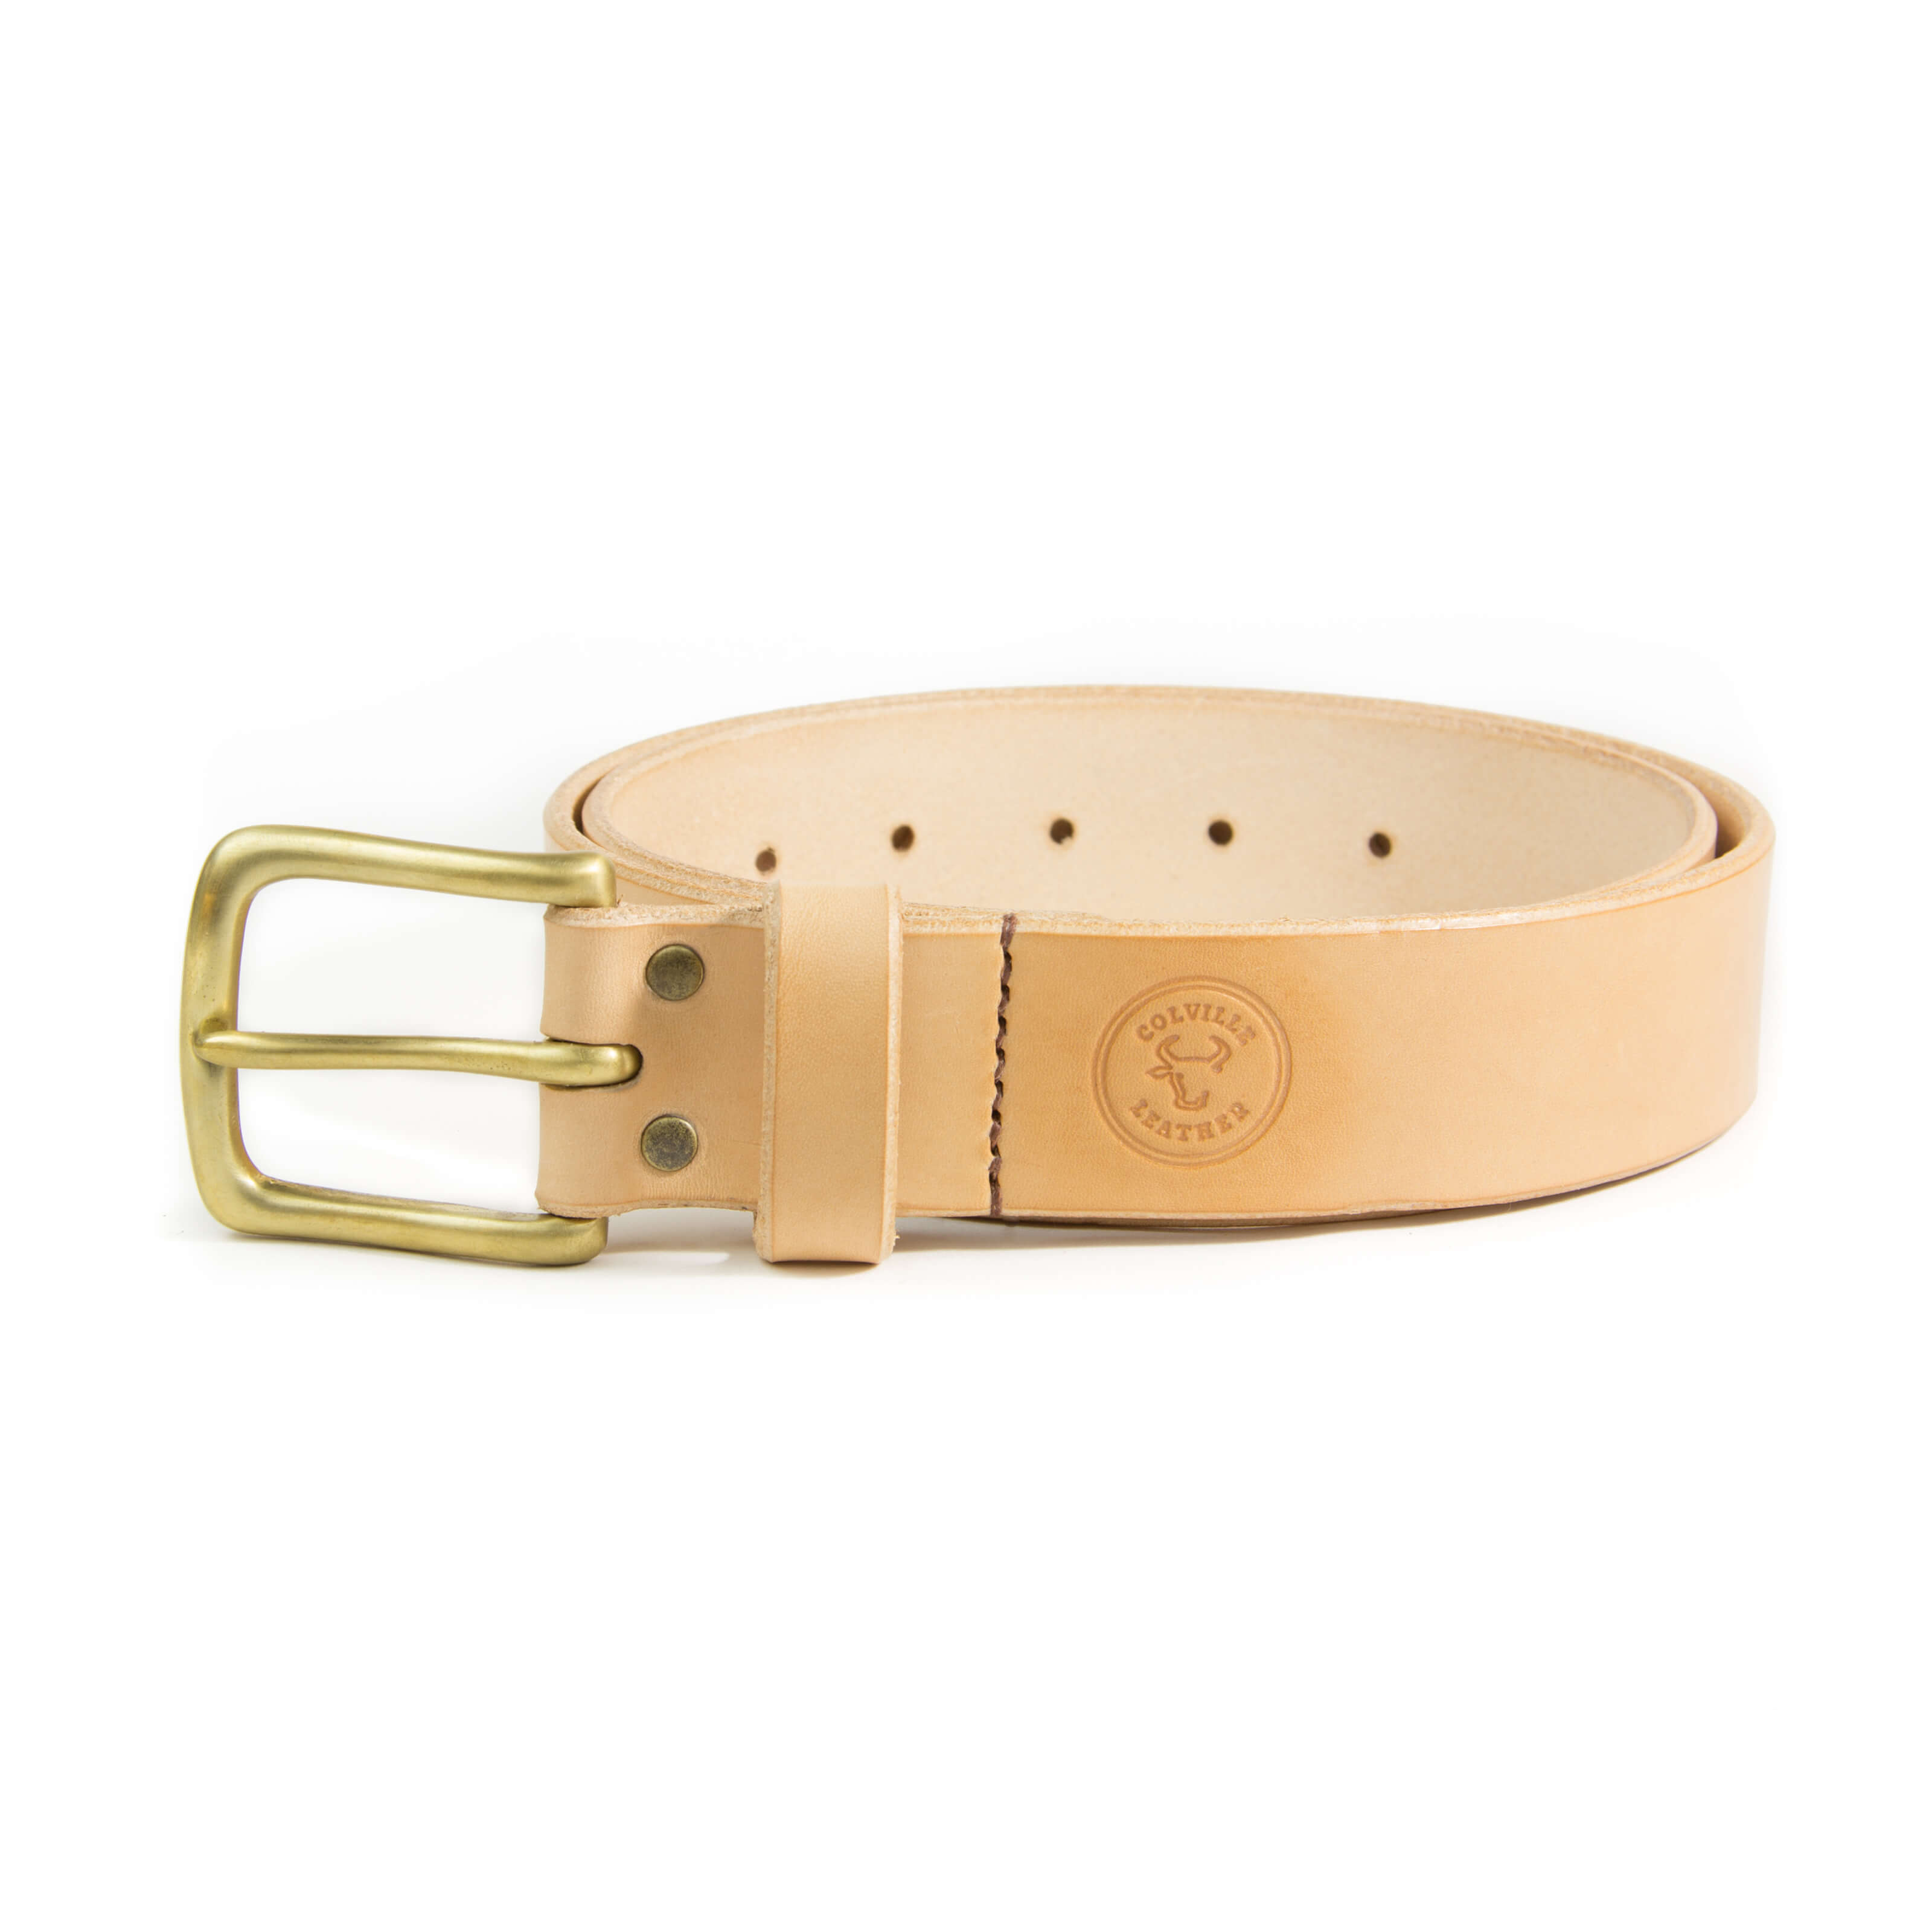 Handmade leather belt by Colville Leather. Natural